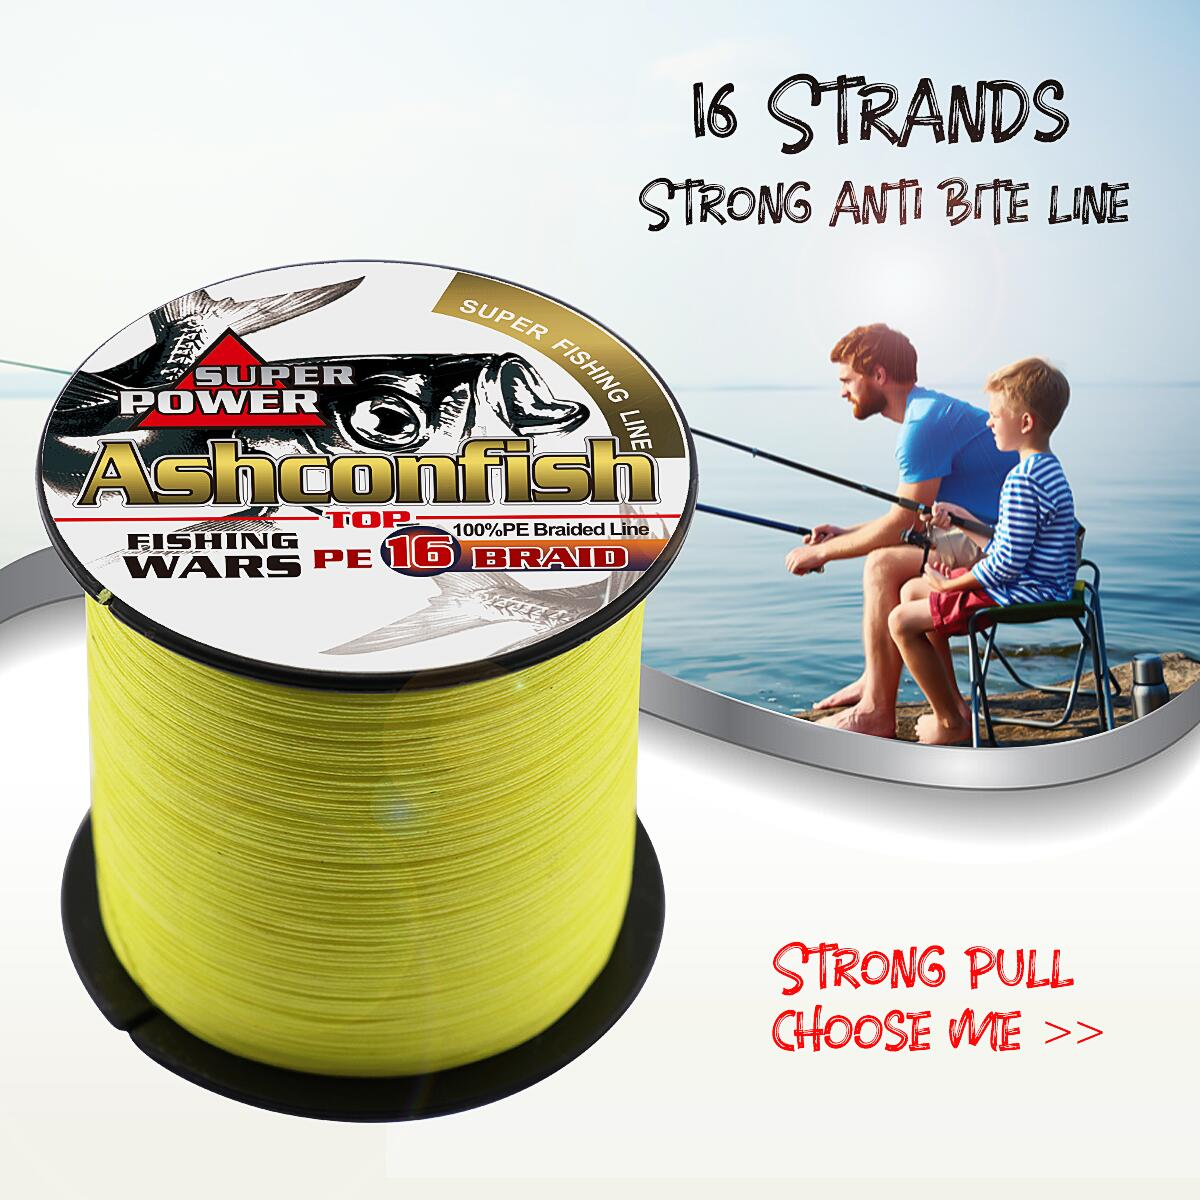 Super new hollowcore braided fishing line 16X 0.16mm-2.0mm strong pe cord 20LB-500LB braided wires rope 100Meter/109yards